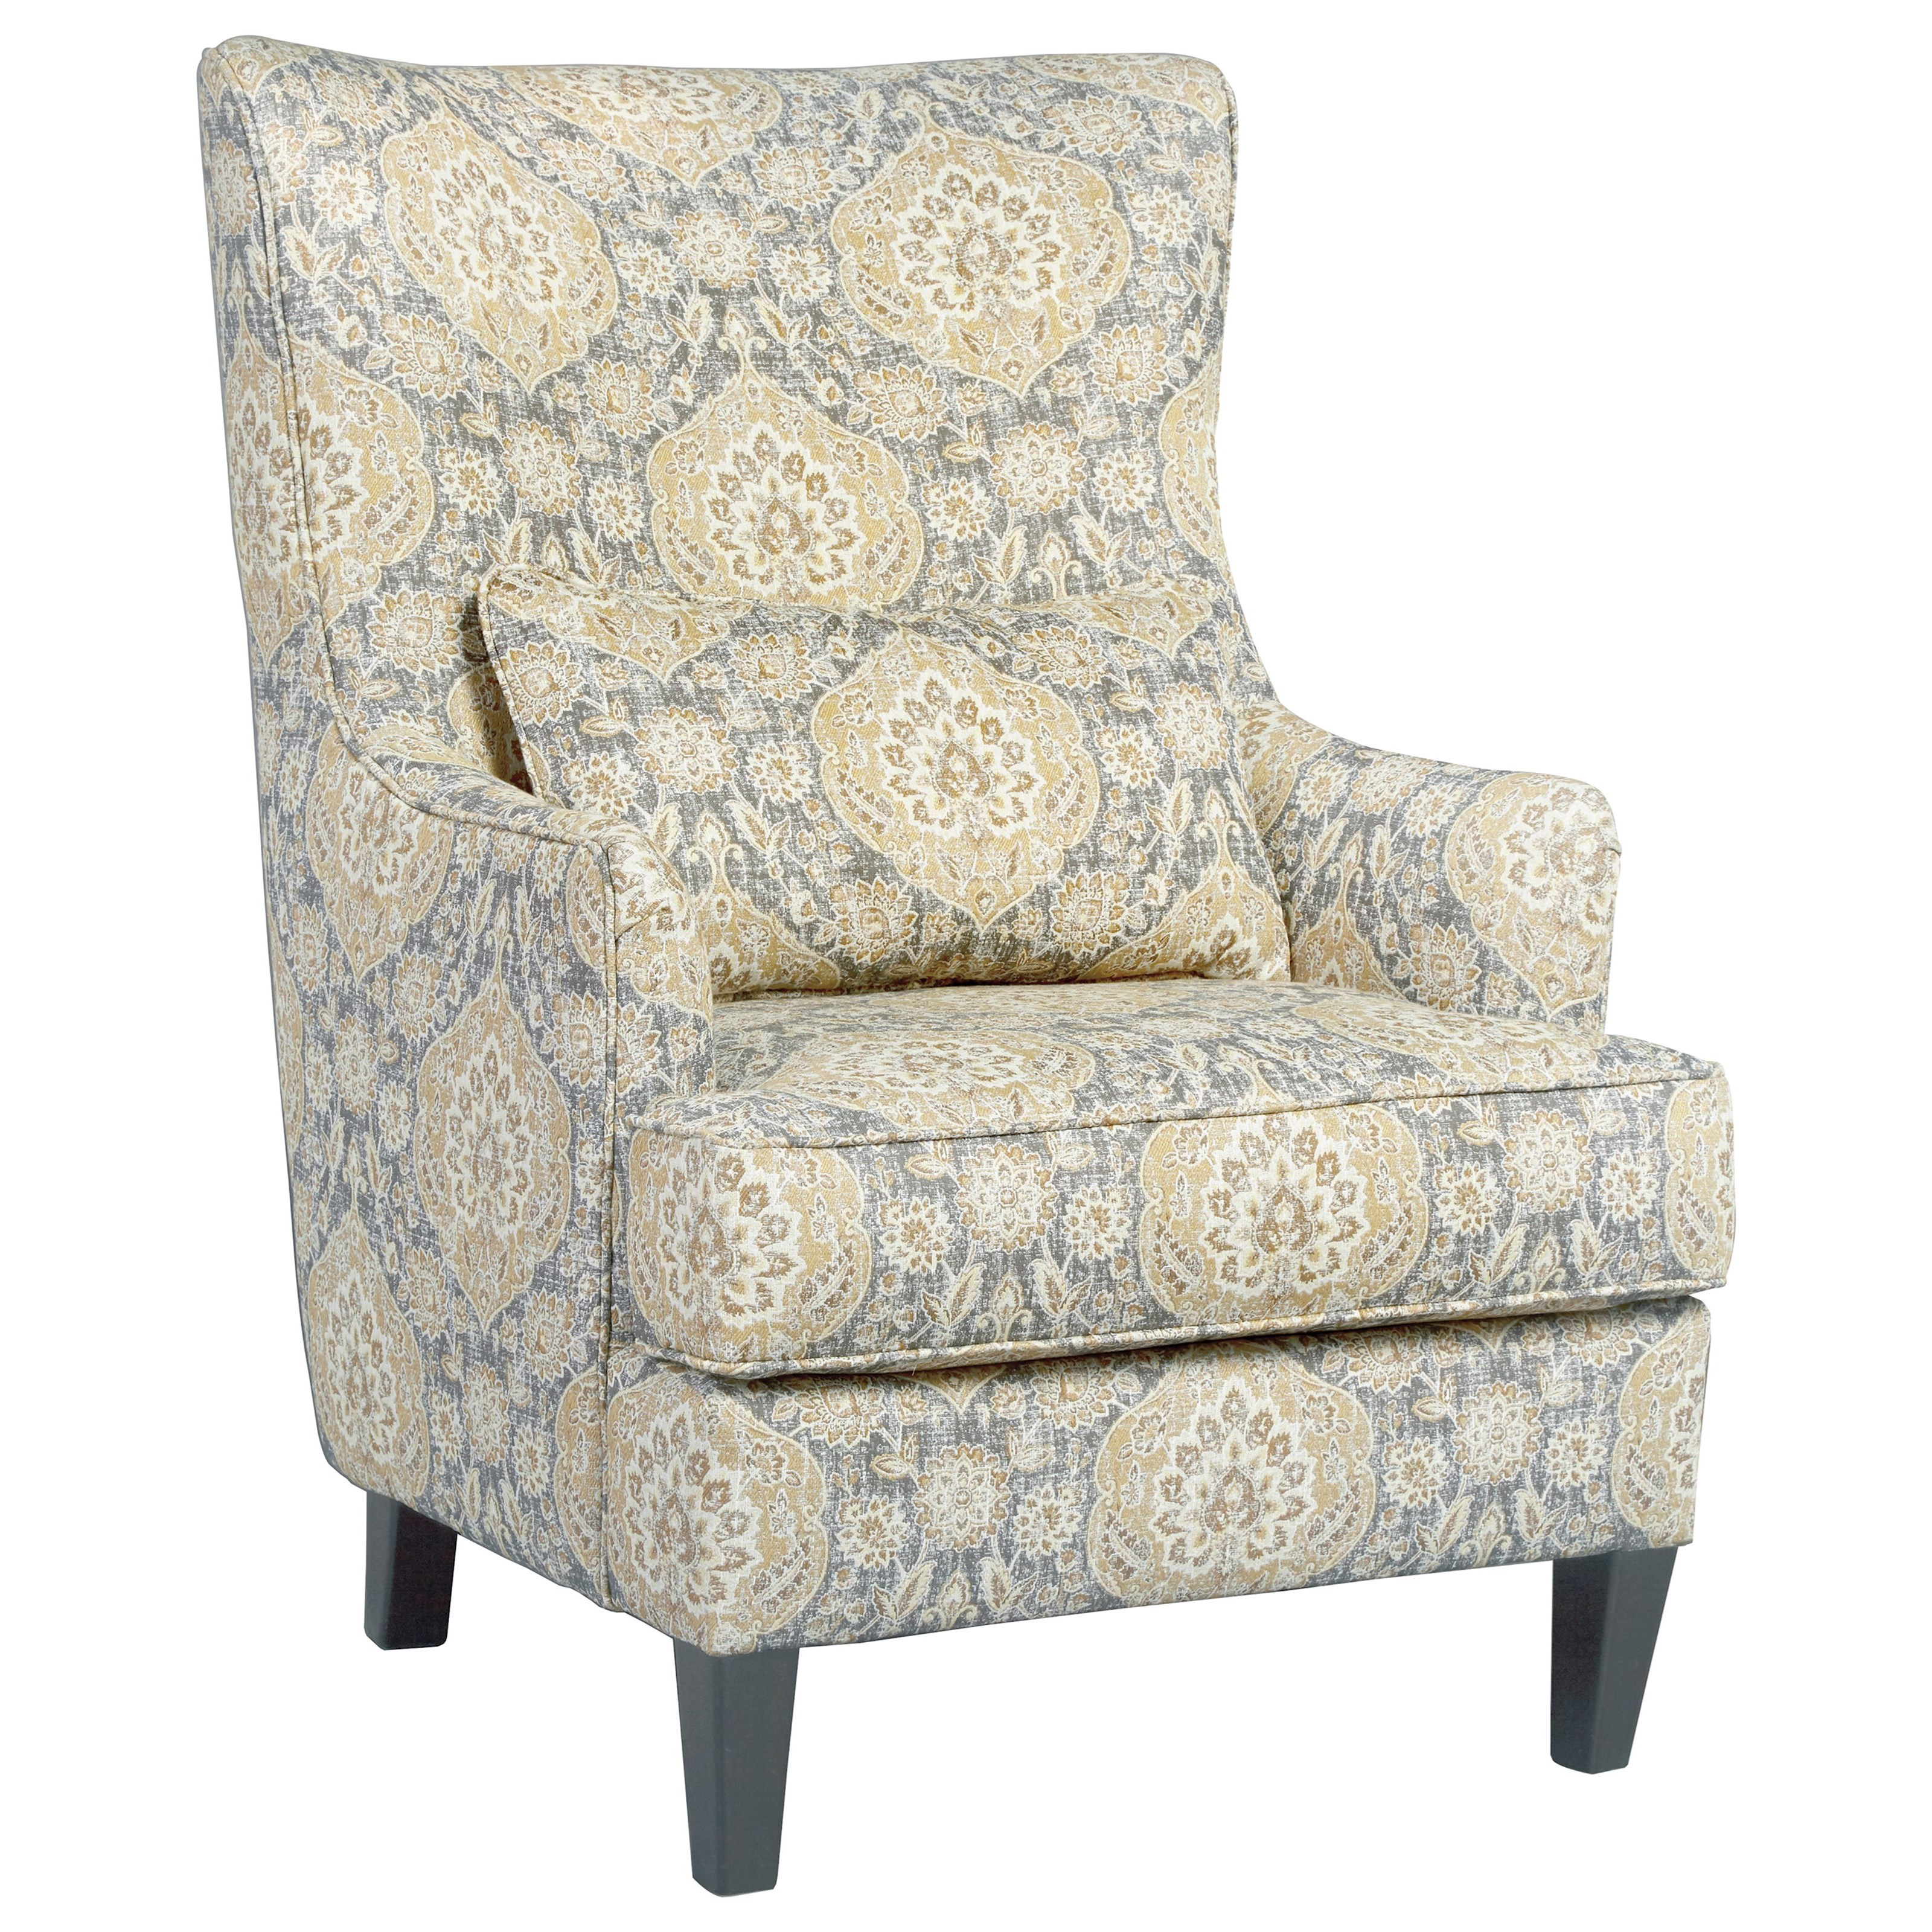 Ashley Furnitiure: Ashley Furniture Aramore 1280522 Scalloped Wingback Accent